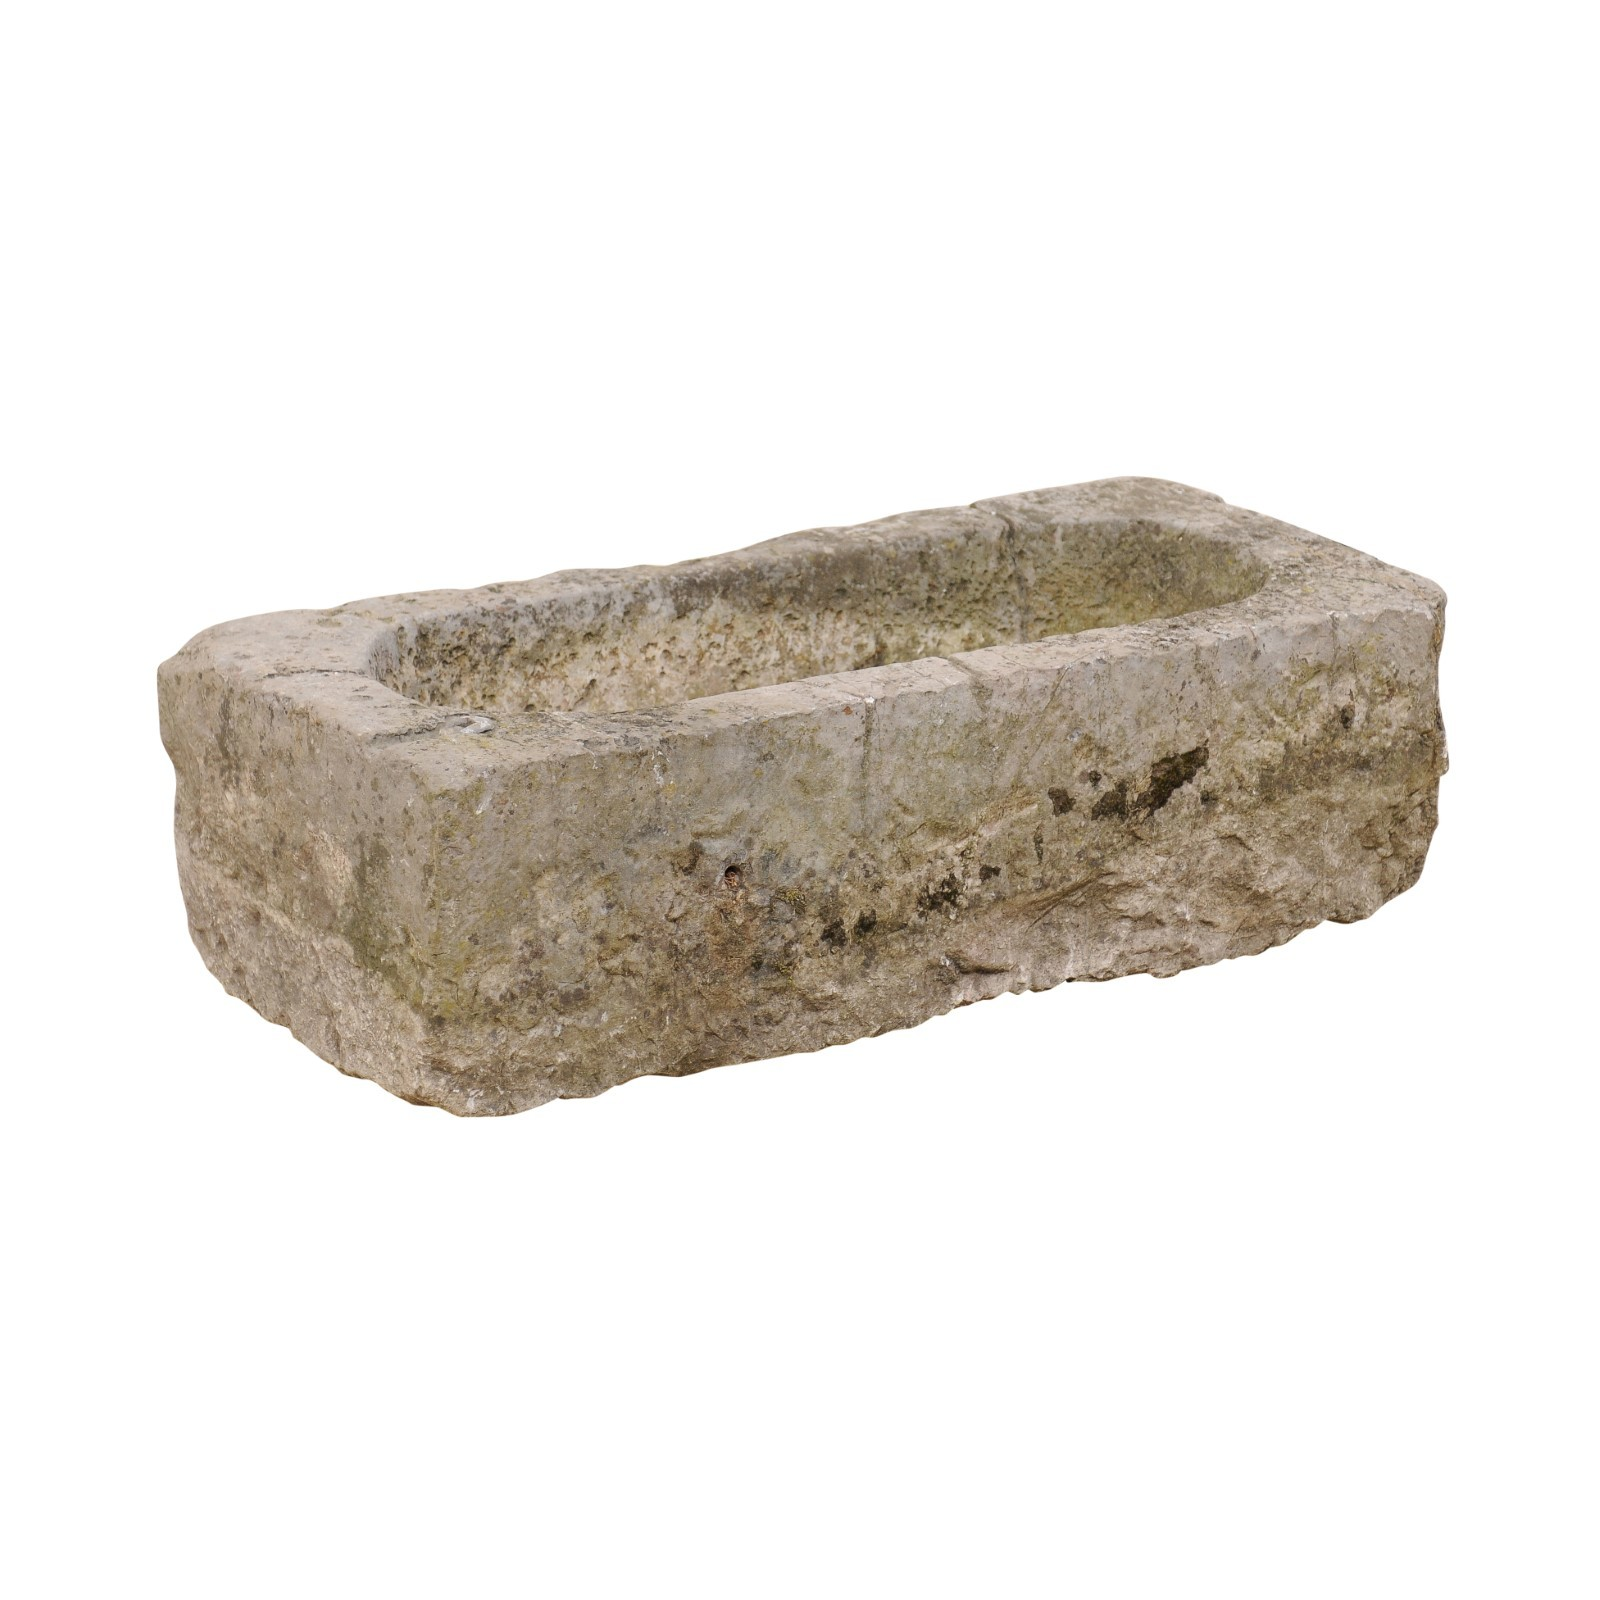 19th C. Spanish Rectangular Stone Basin